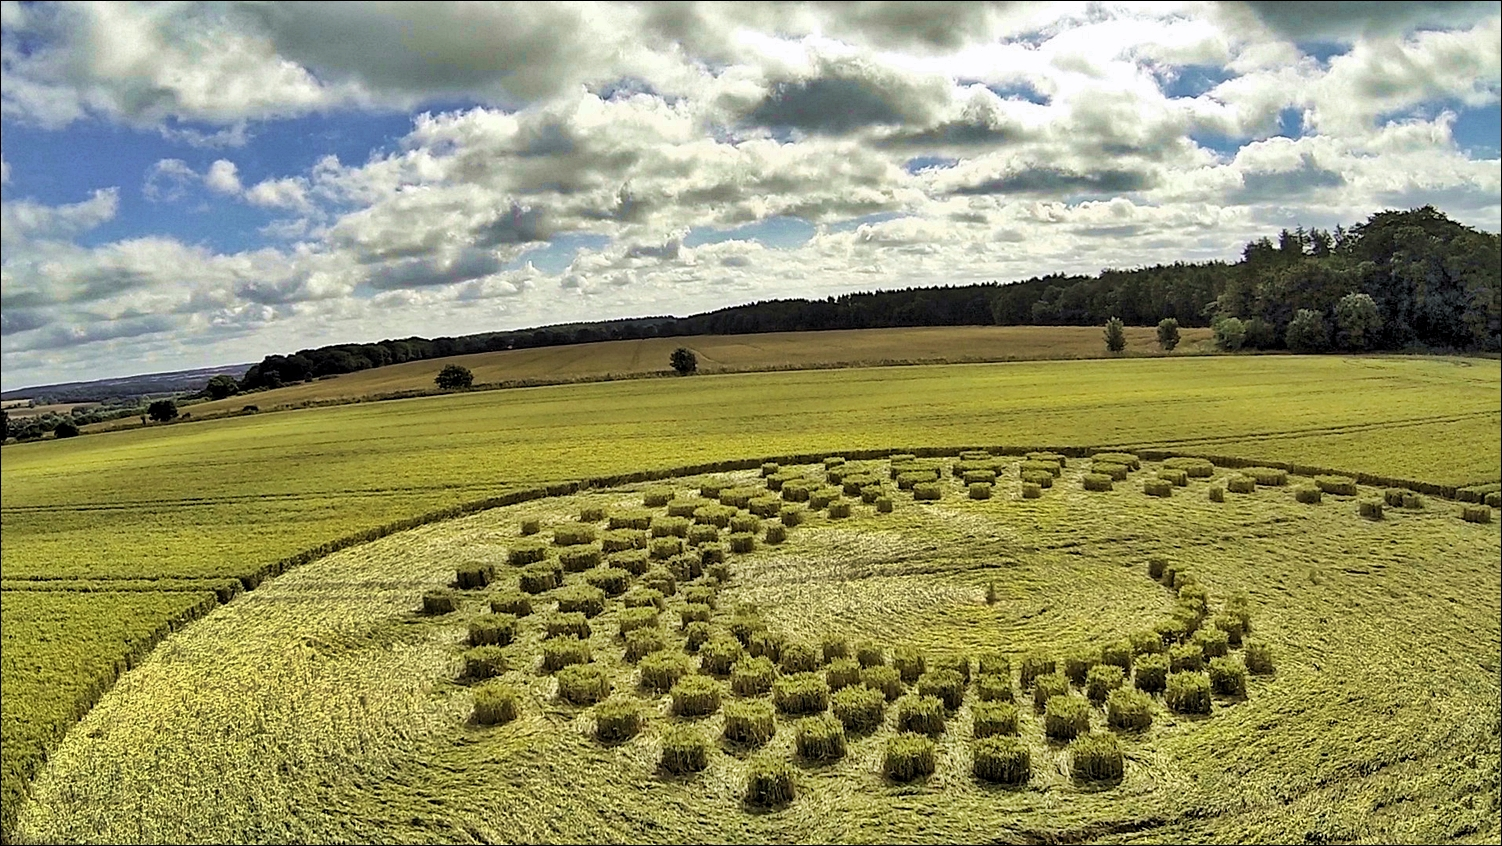 aerial_view_of_crop_circle_in_wiltshire_2014_by_mrgyrofpv-d82s9ad